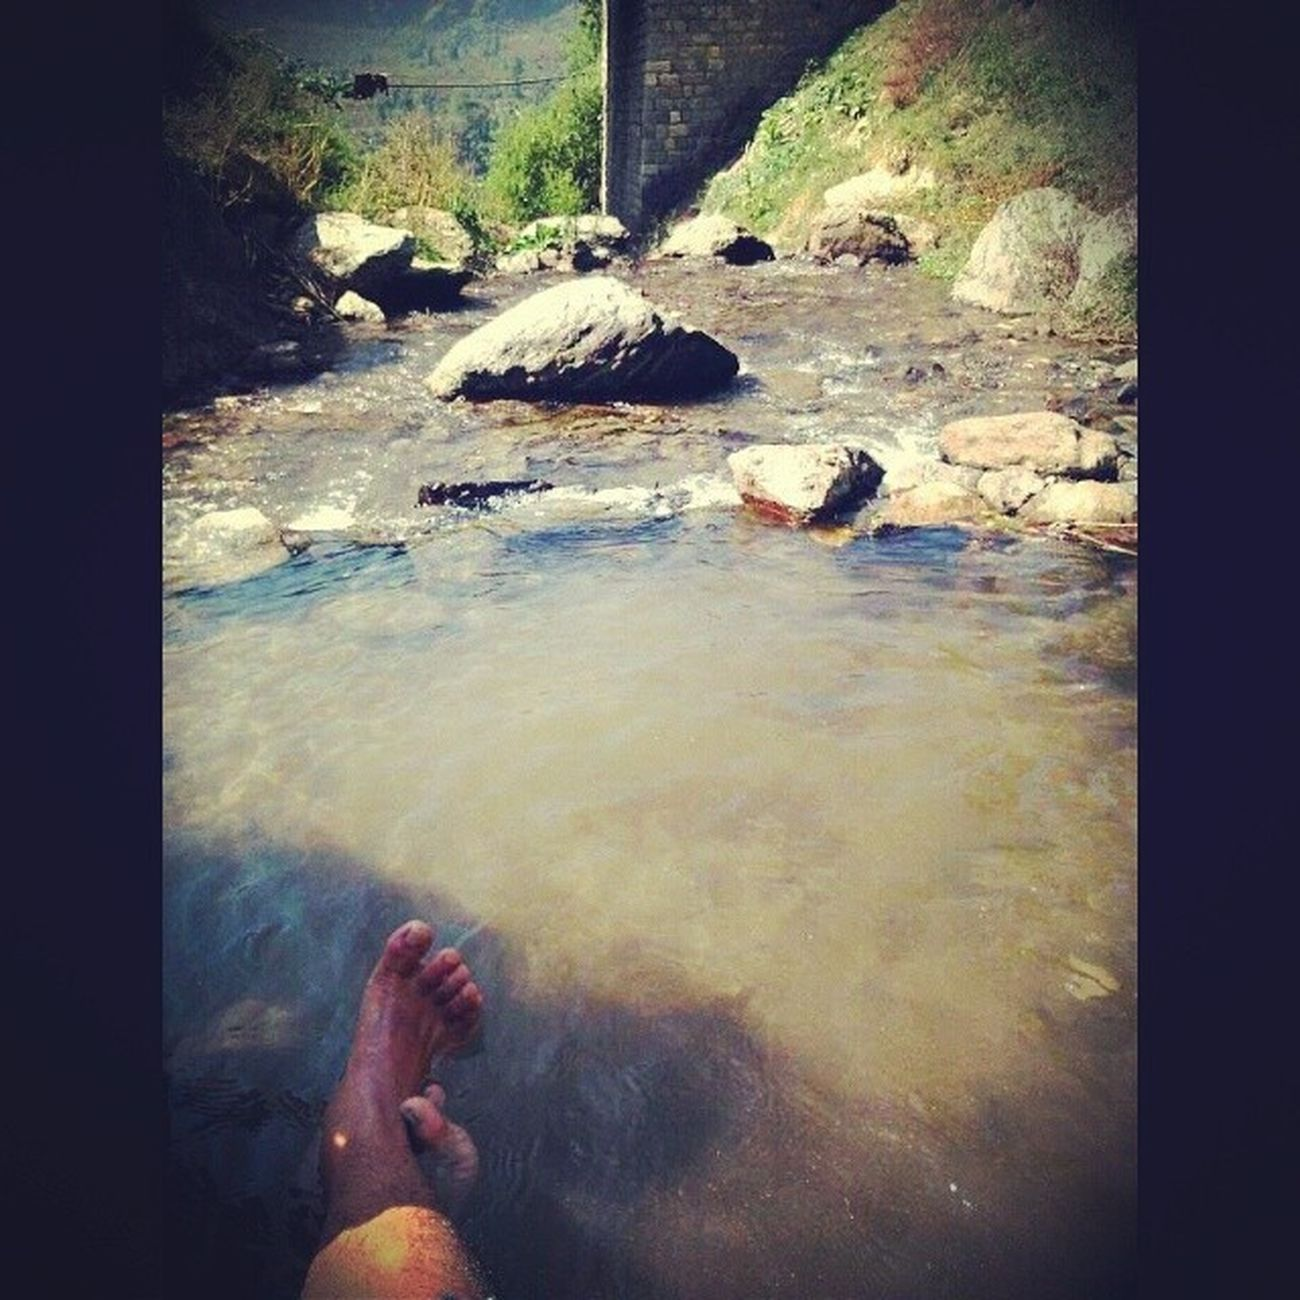 Chilling in the Himalayan waters. Chilling Himalayas Collegetrip Waterfall Bliss Adventuring Travelling Nature India Indian Instaedit Instapic Insta_adventurers Picoftheday Igers